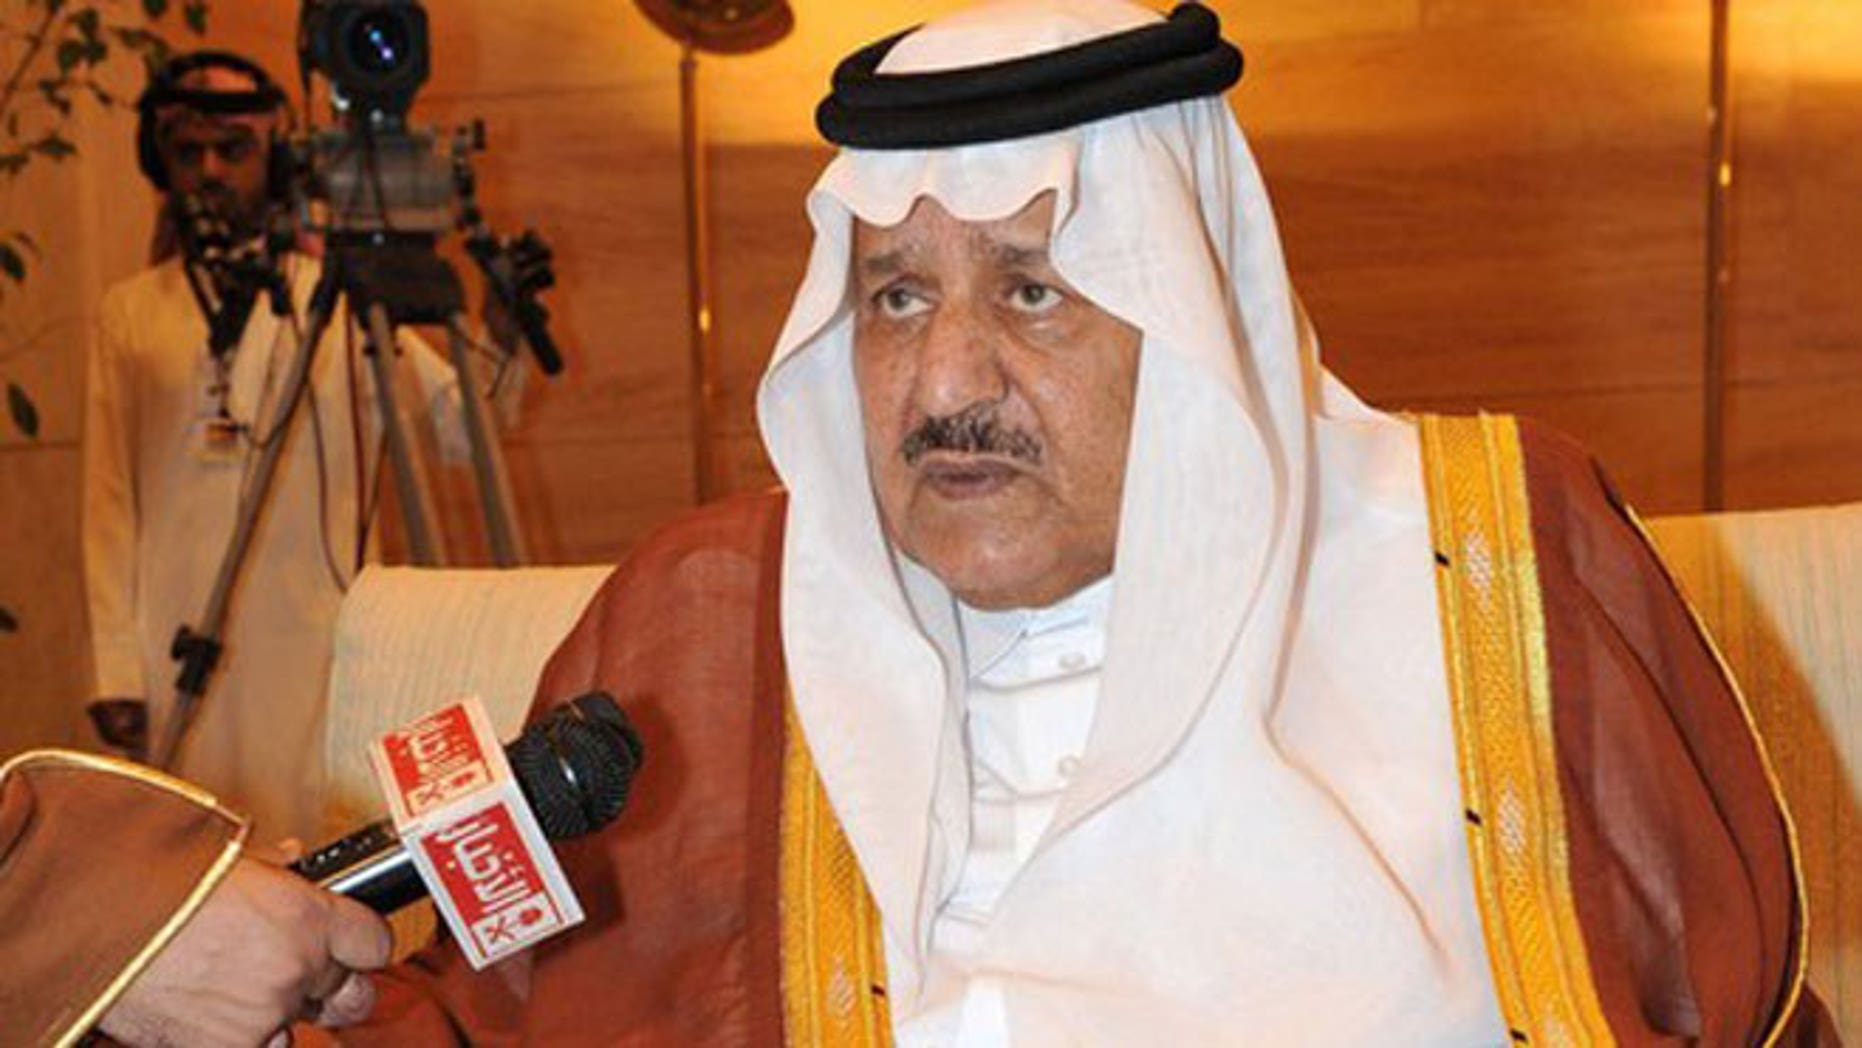 October 29, 2011: Prince Nayef bin Abdulaziz al-Saud, newly appointed Crown Prince speaks at an interview at the Riyadh Governor's Palace.